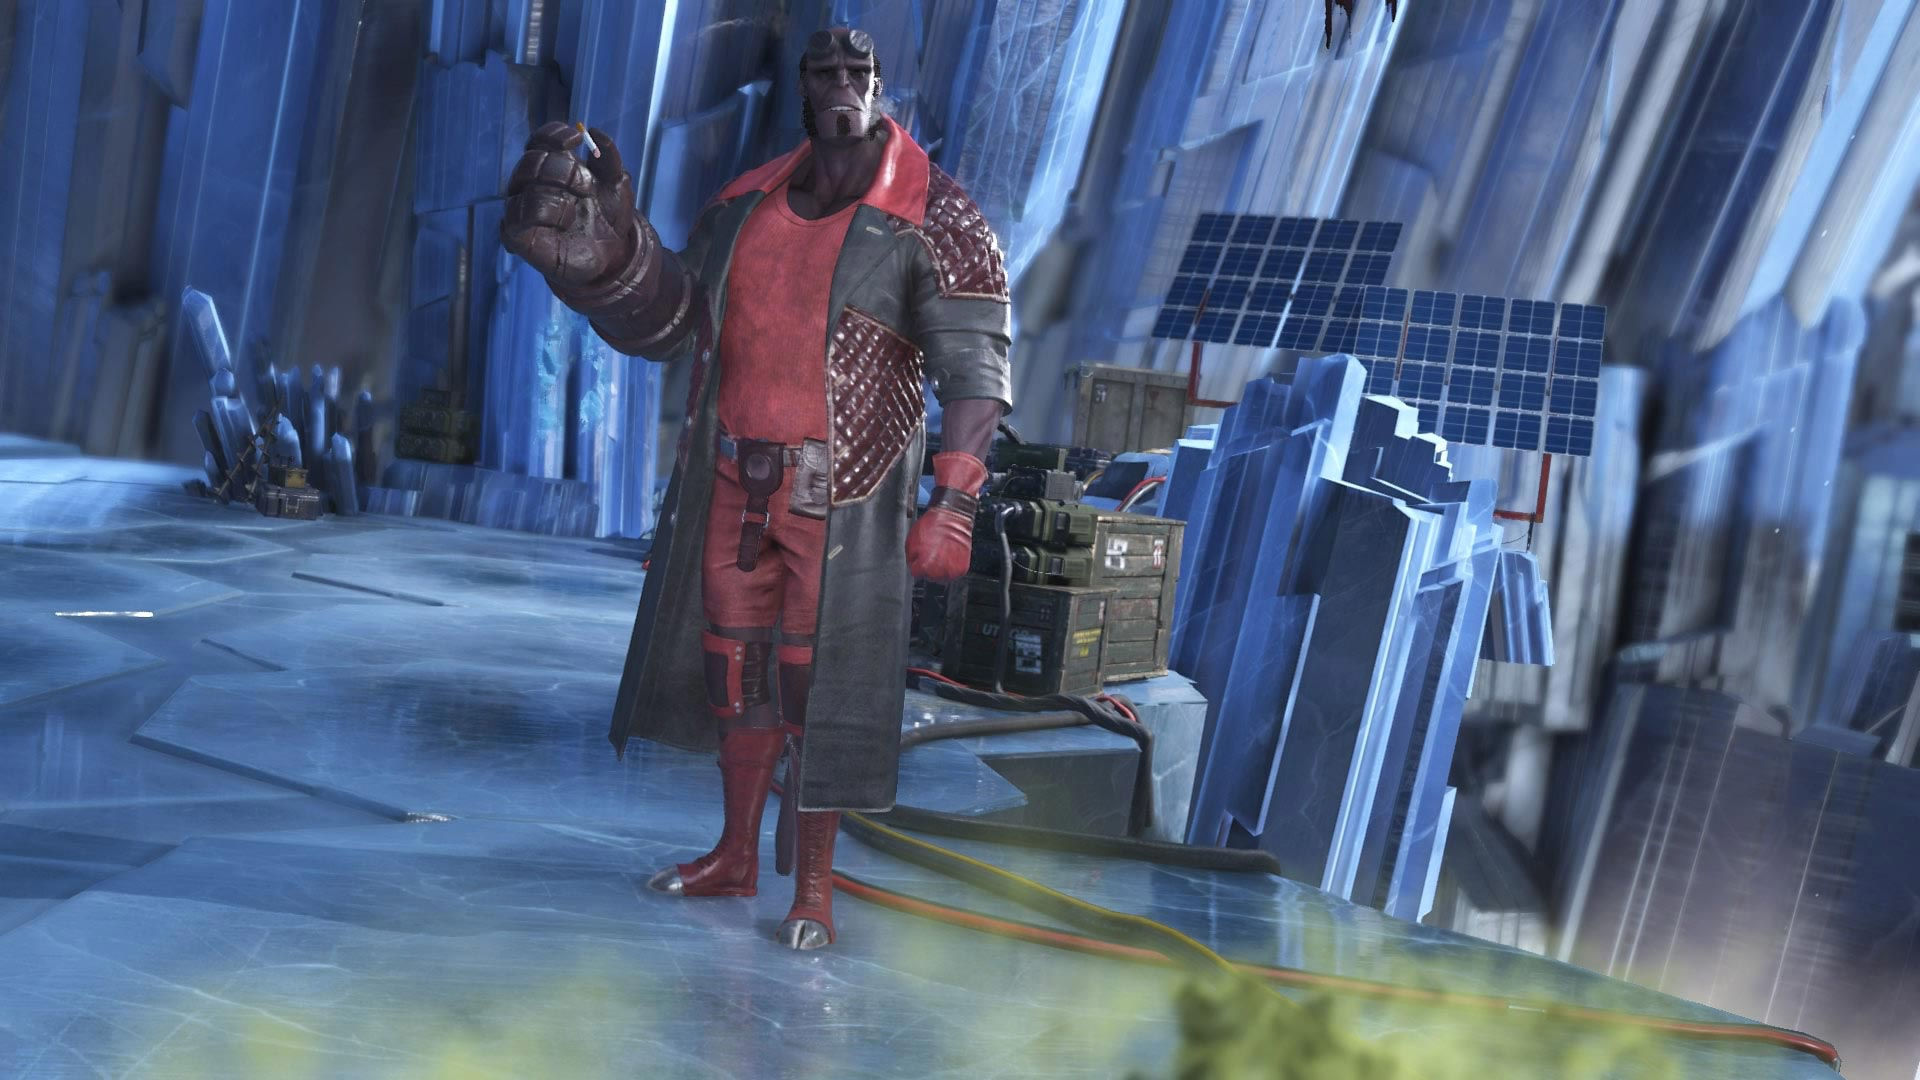 Hellboy in Injustice 2 3 out of 9 image gallery